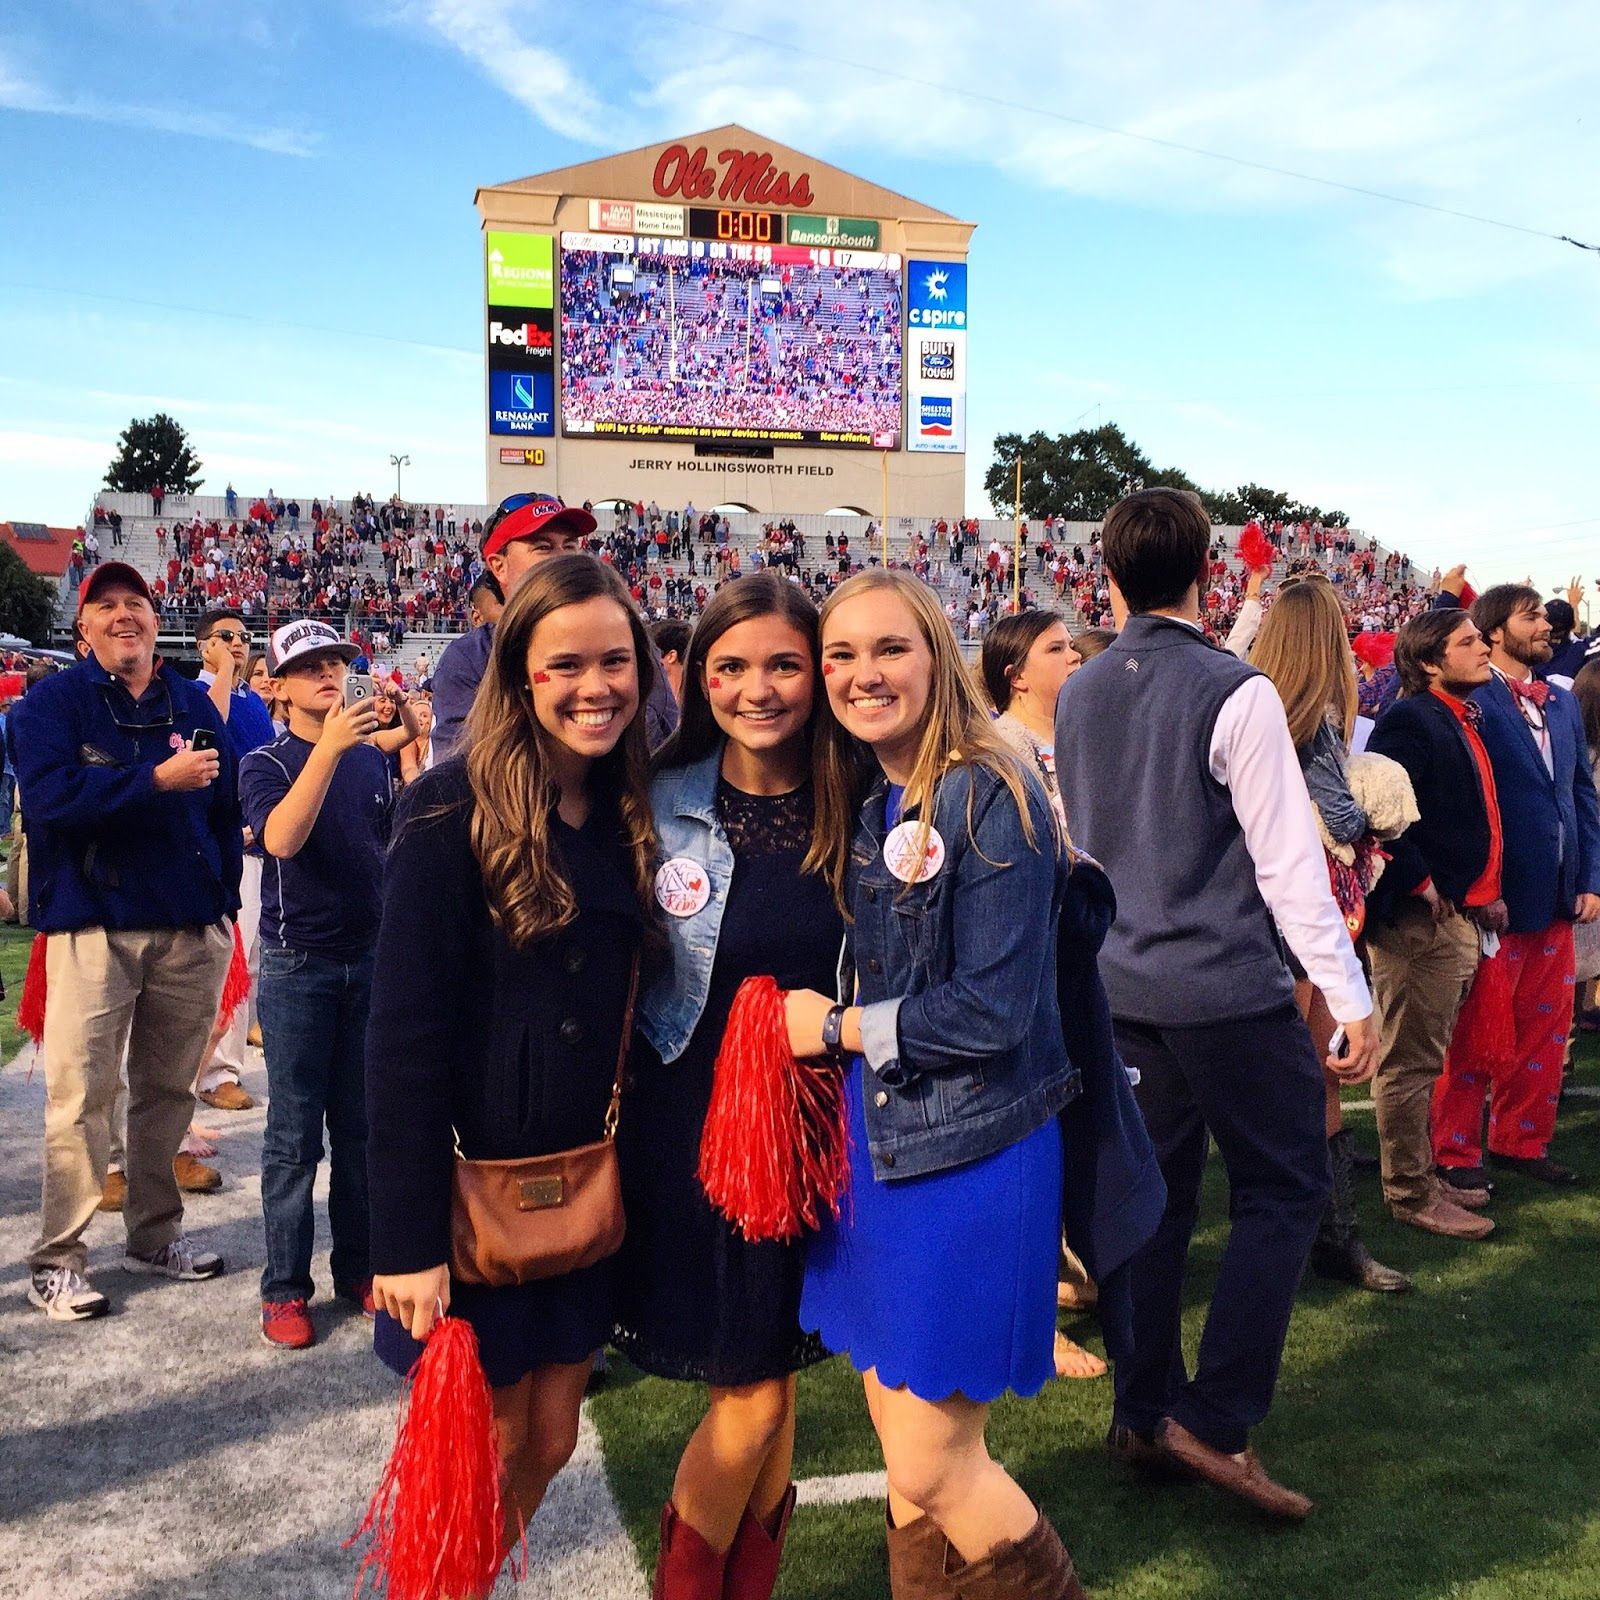 Ole miss gameday colors 2015 - Ole Miss Gameday Attire For The Grove